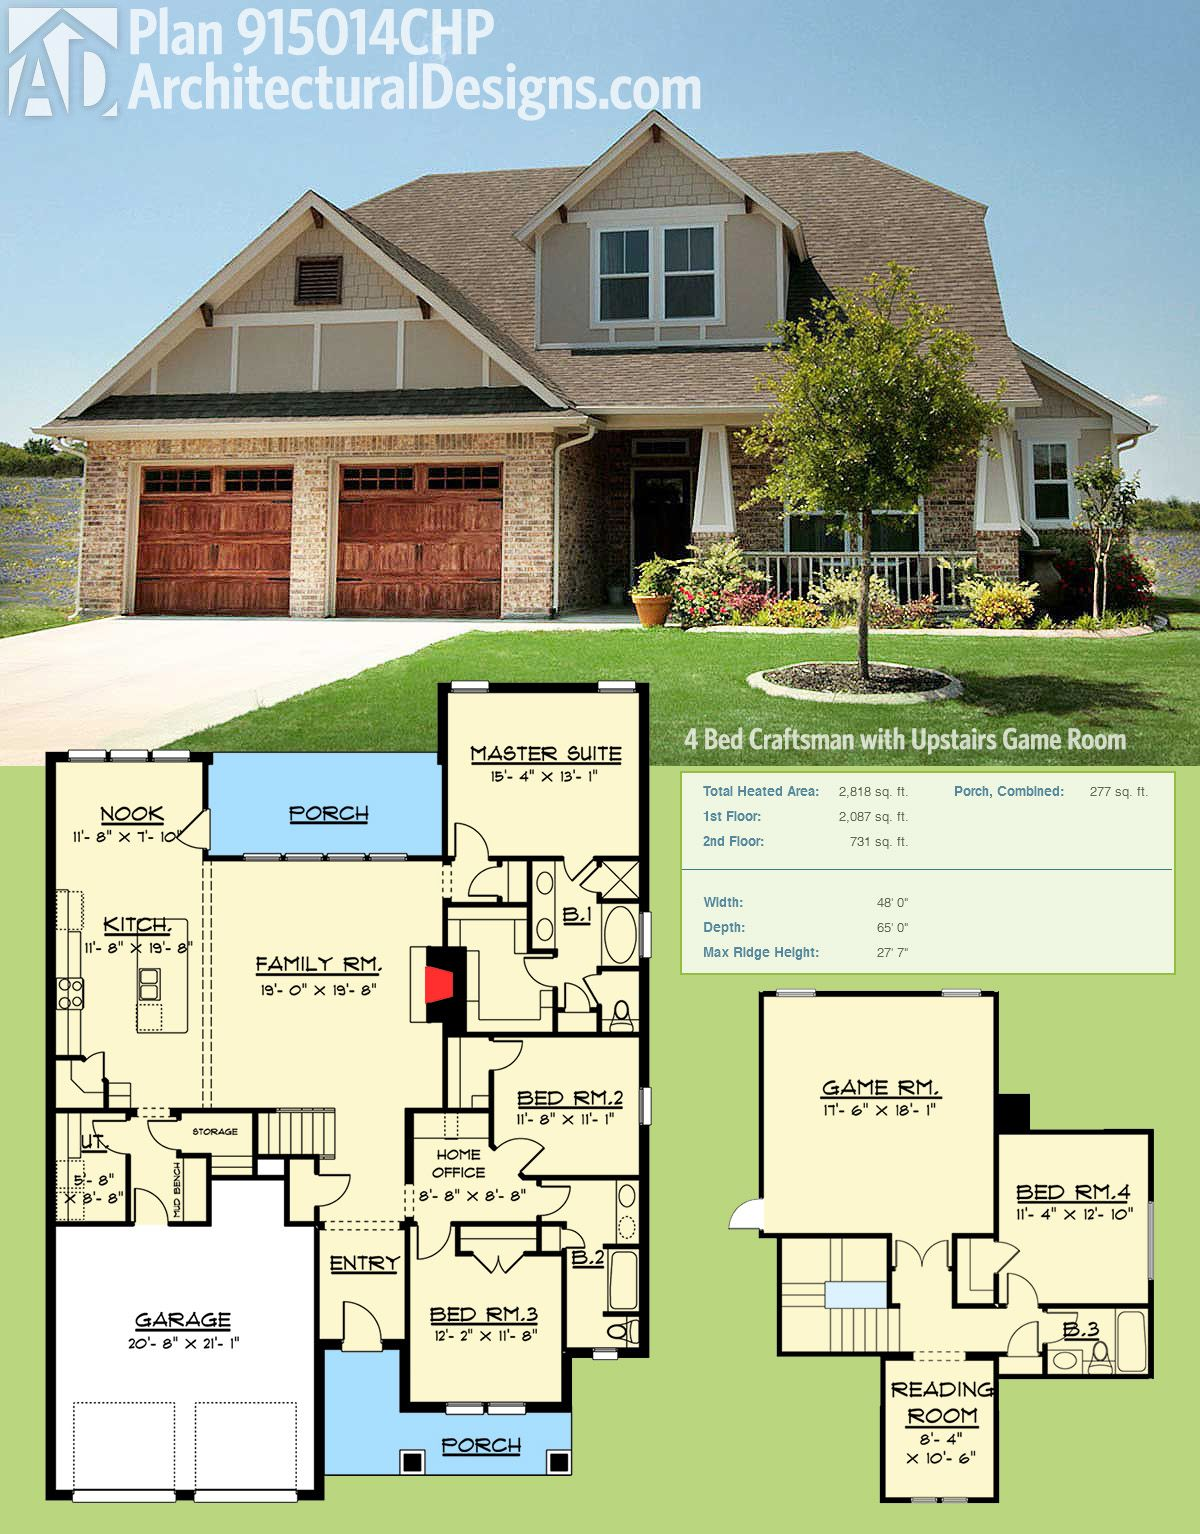 Plan 915014chp 4 Bed Craftsman With Upstairs Game Room